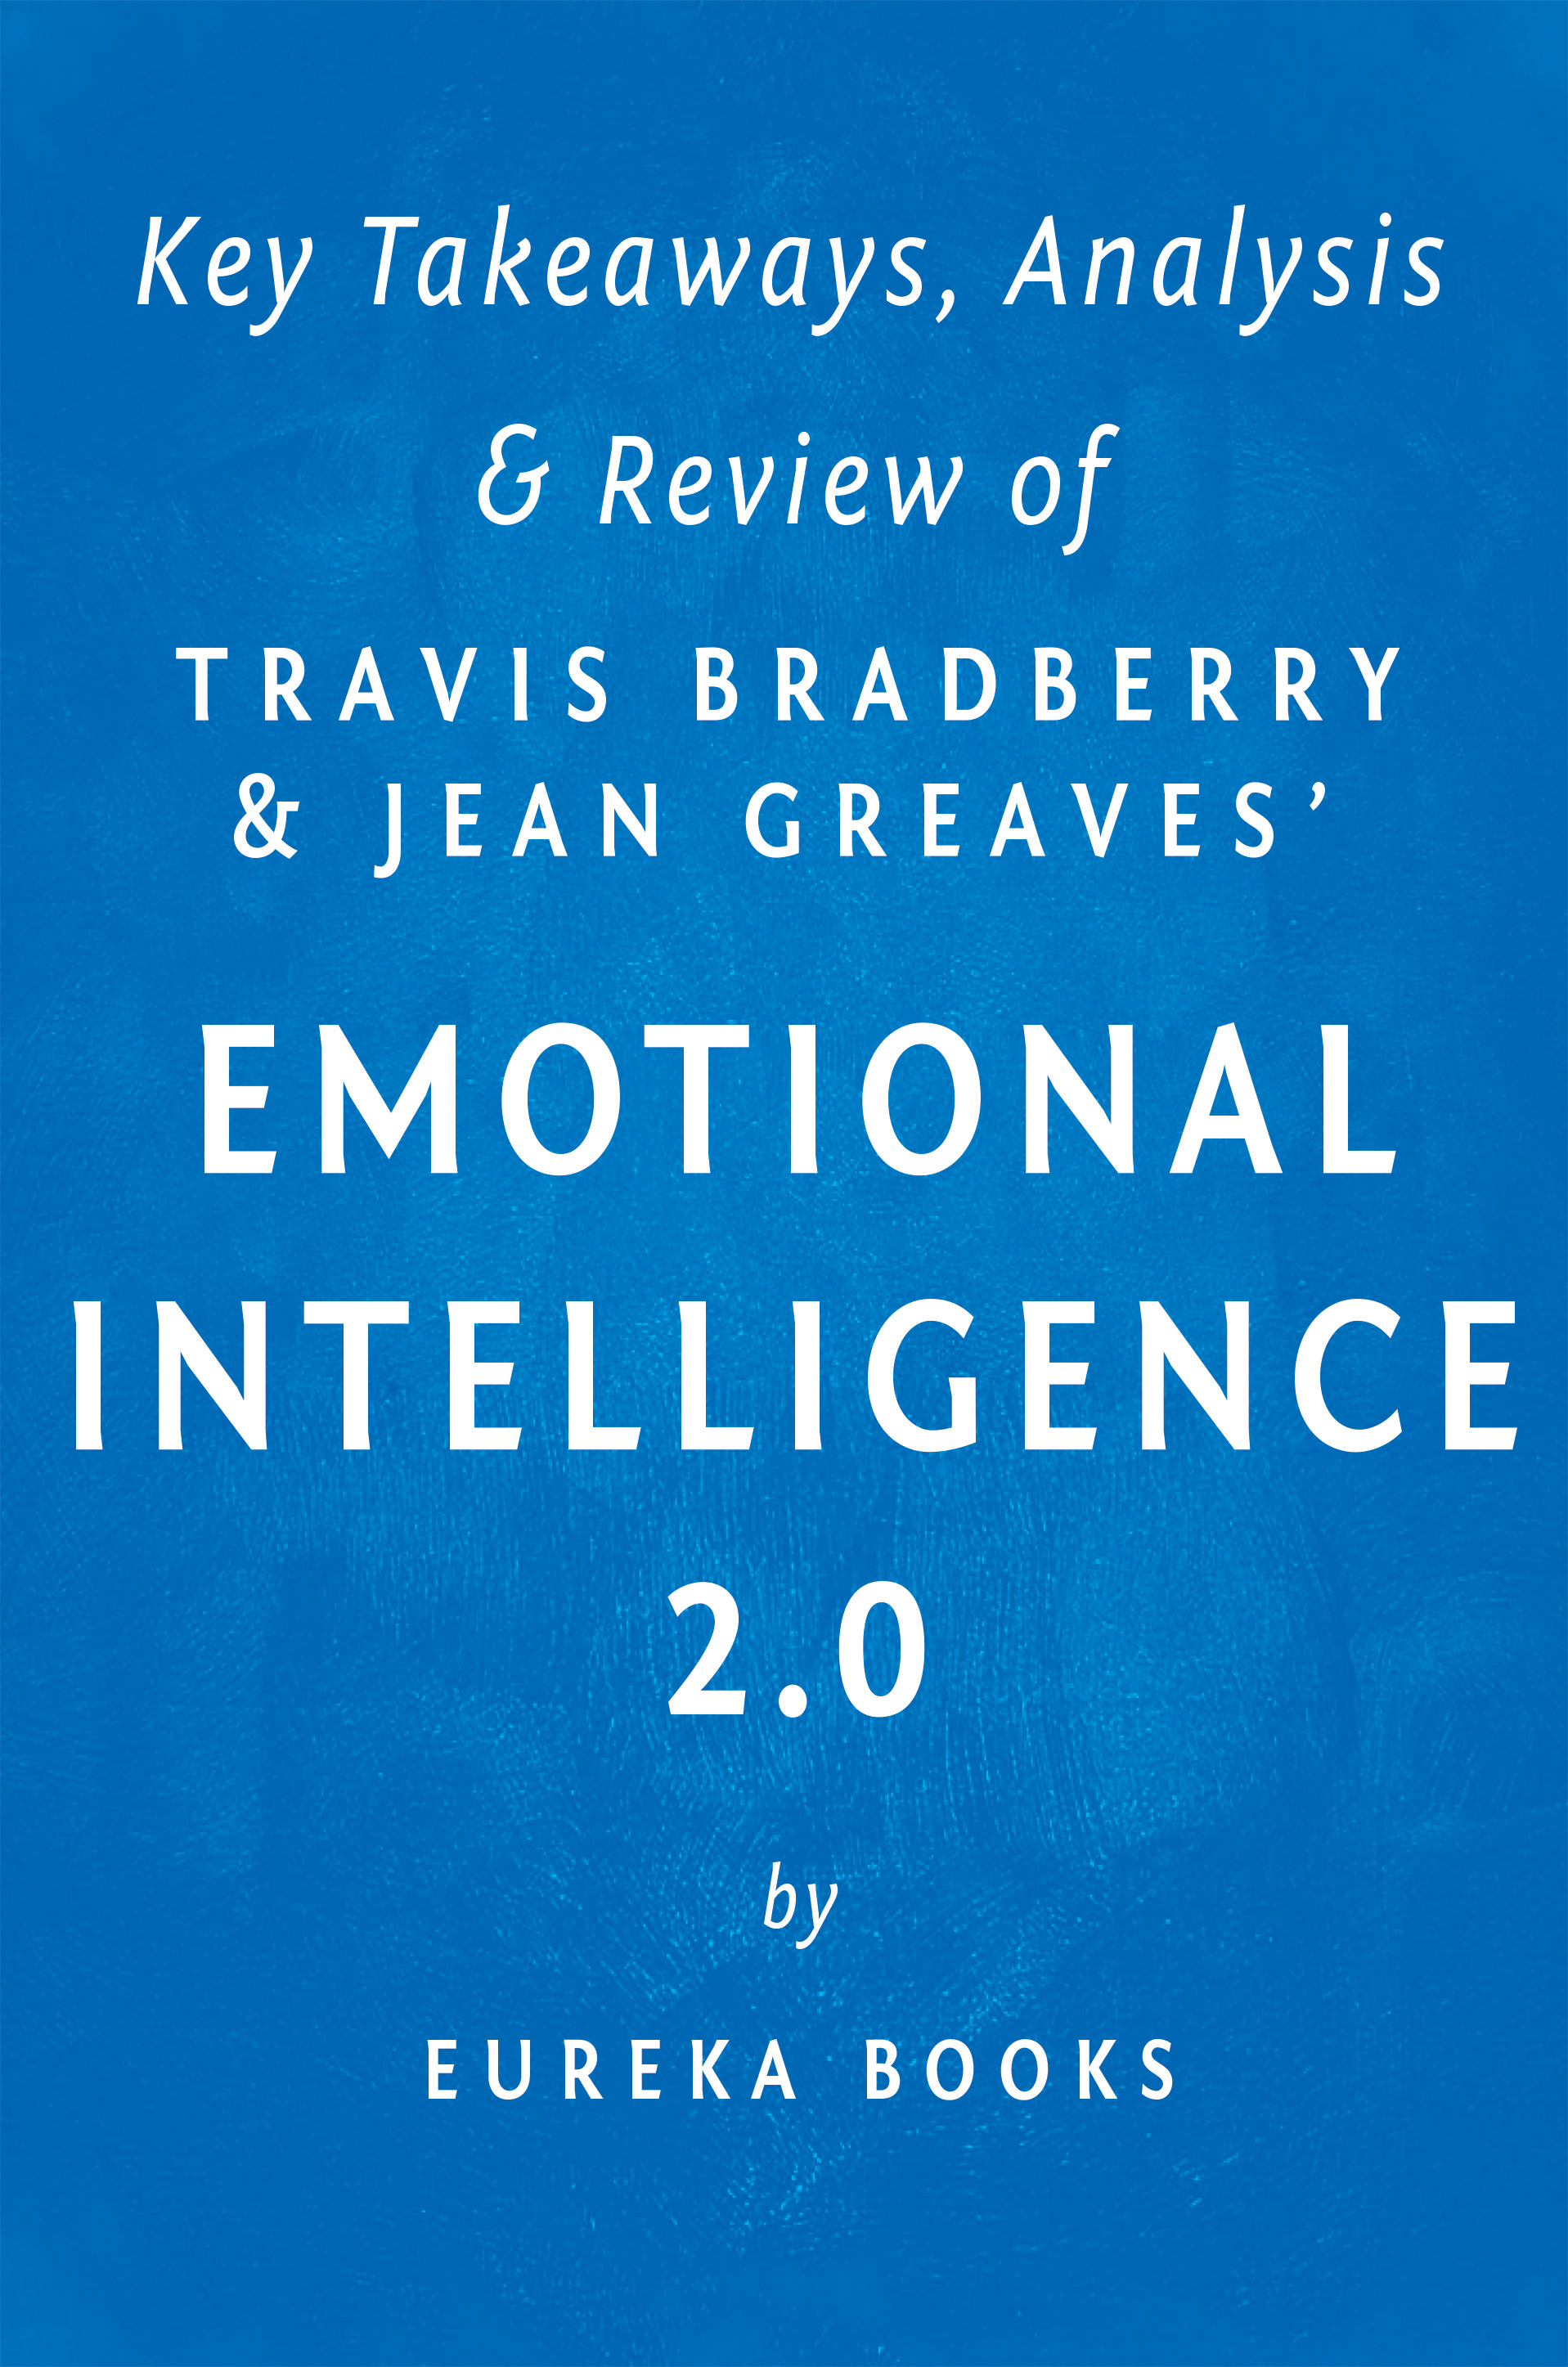 Download Ebook Emotional Intelligence 2.0: by Travis Bradberry and Jean Greaves | Key Takeaways, Analysis & Review by Eureka Books Pdf